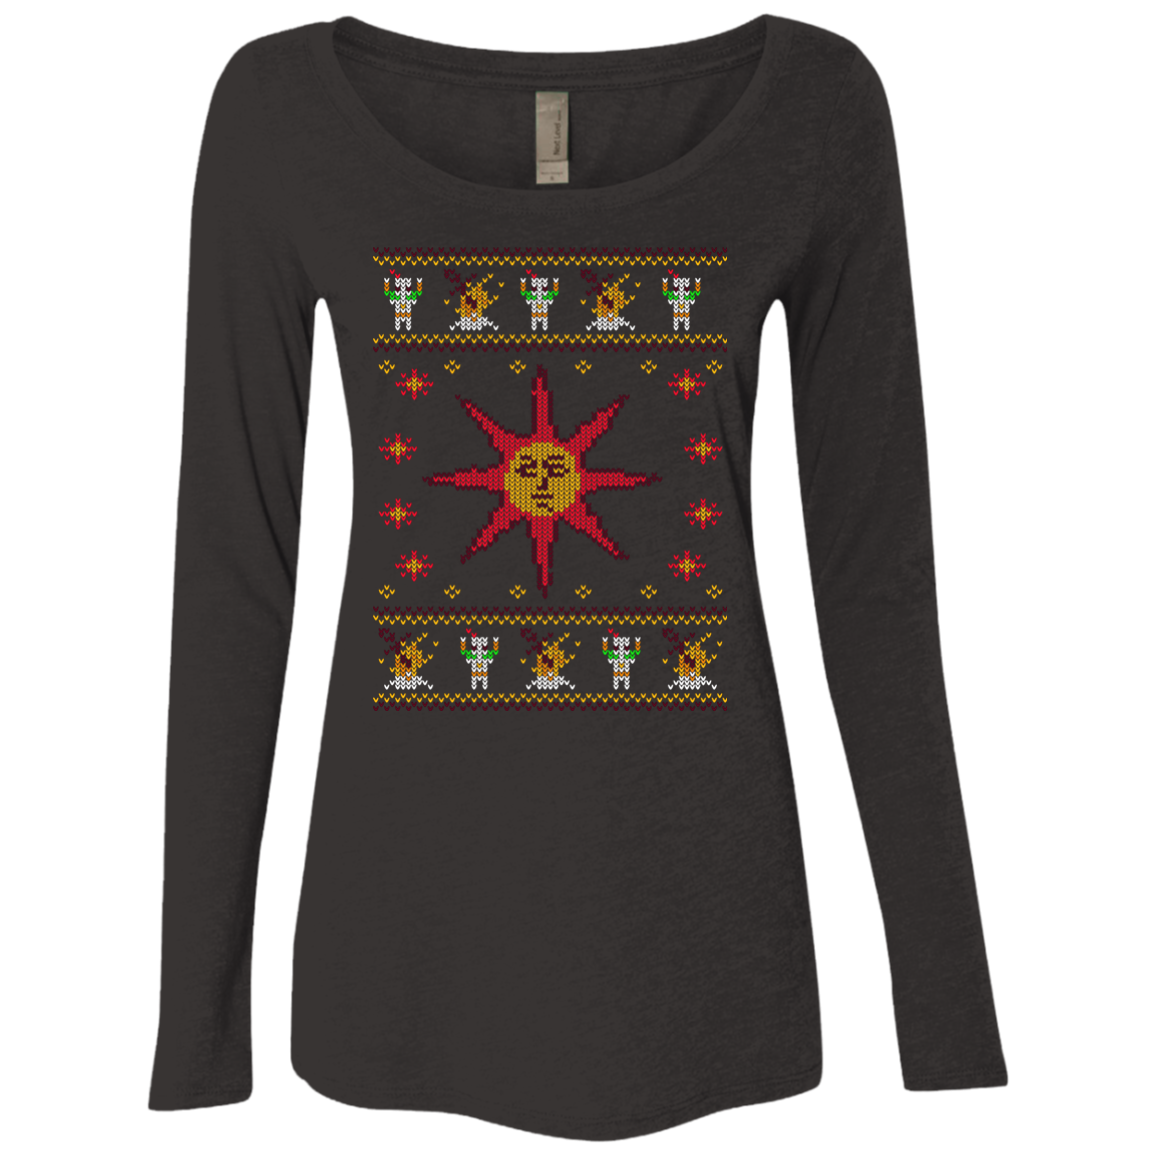 Christmas Sweater Dark Souls Women s Triblend Long Sleeve Shirt